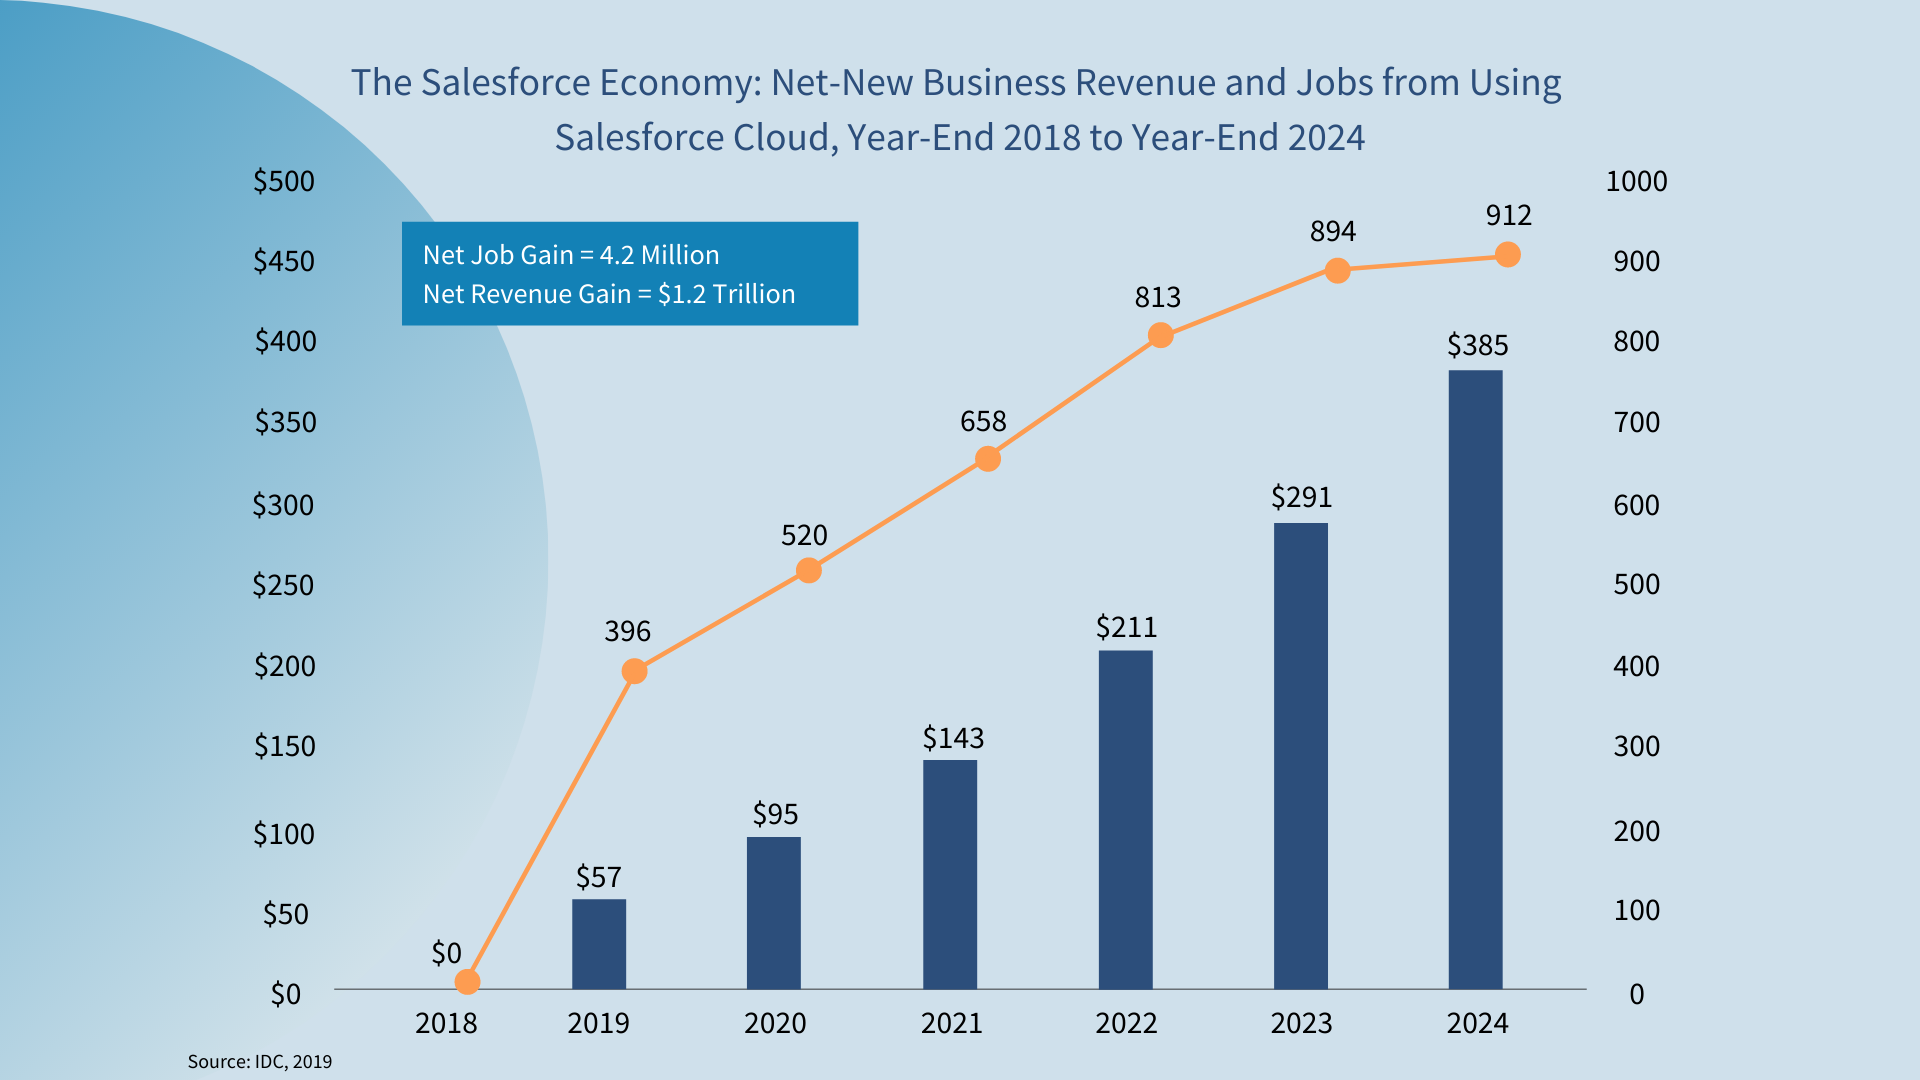 The Salesforce Economy: Net-New Business Revenue and Jobs from Using Salesforce Cloud, Year-End 2018 to Year-End 2024